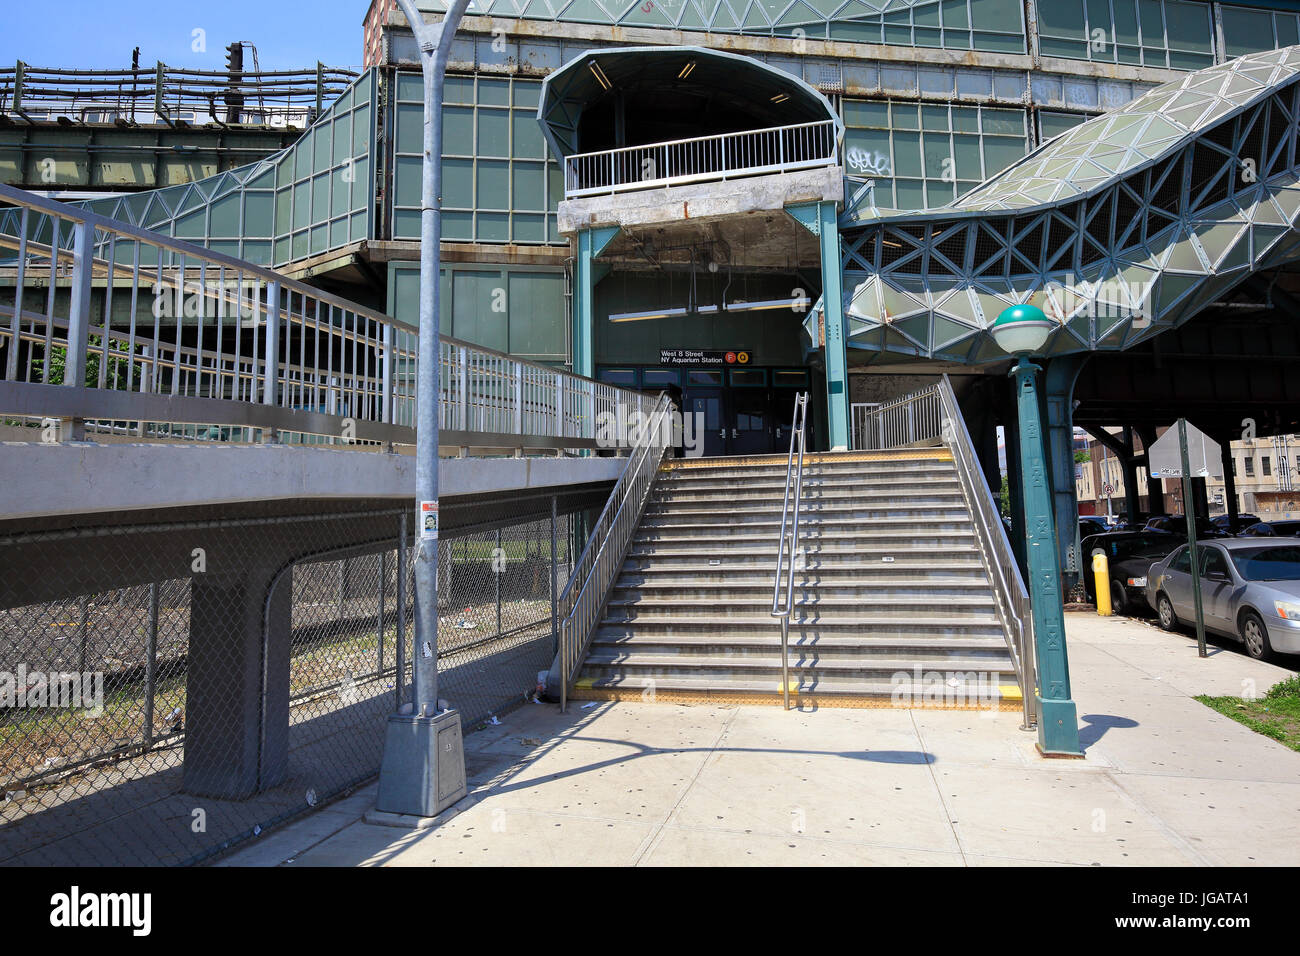 Elevated subway station in Coney Island New York - Stock Image